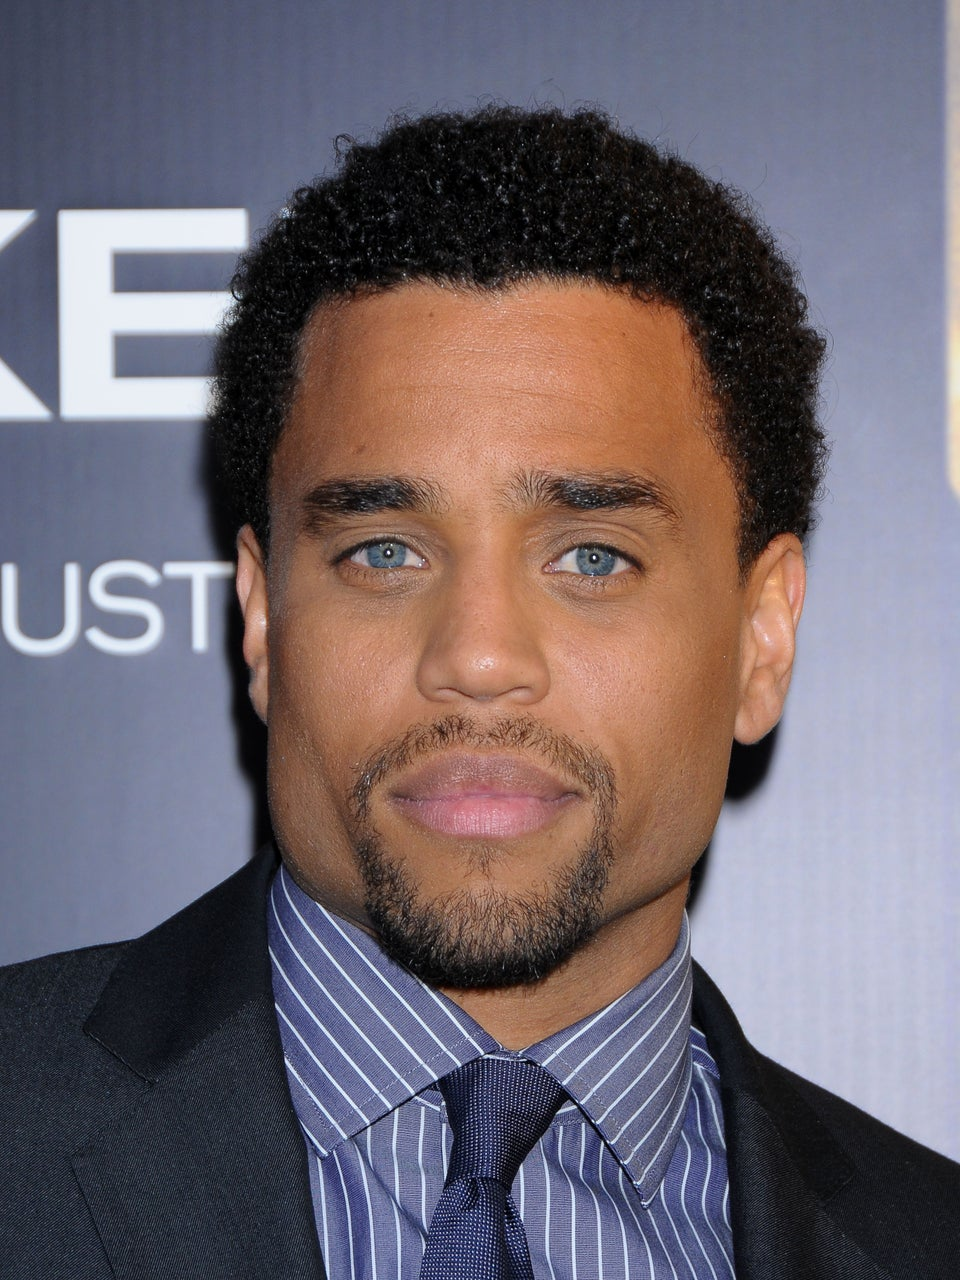 Michael Ealy Wants a Family Someday